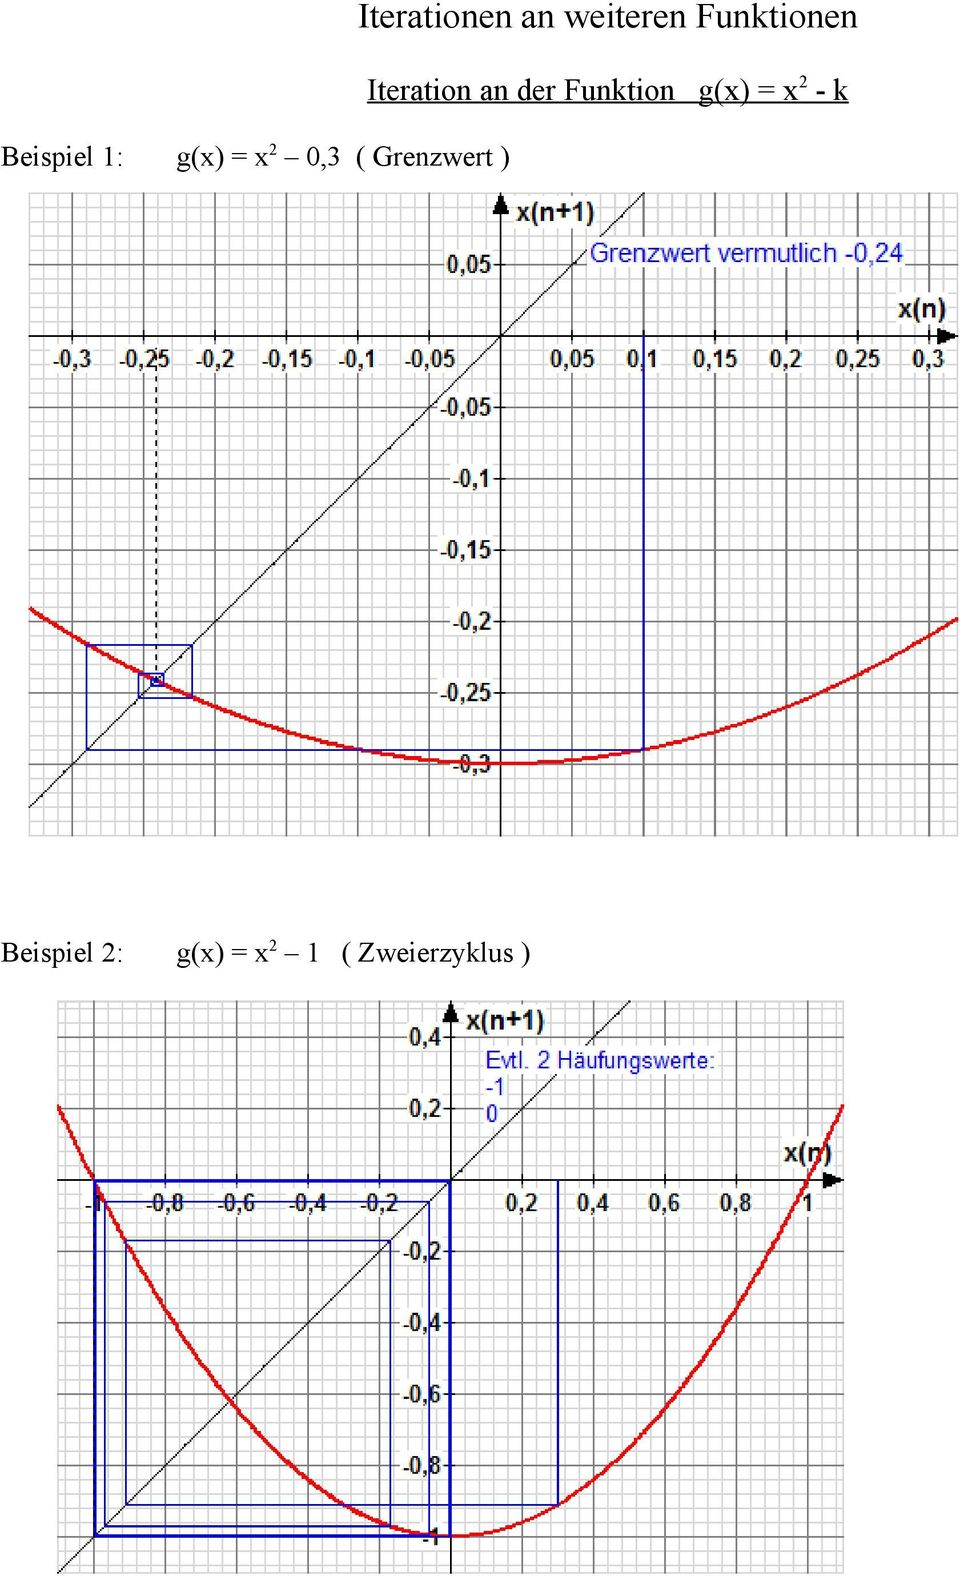 Iteration an er Funktion g(x) = x 2 - k